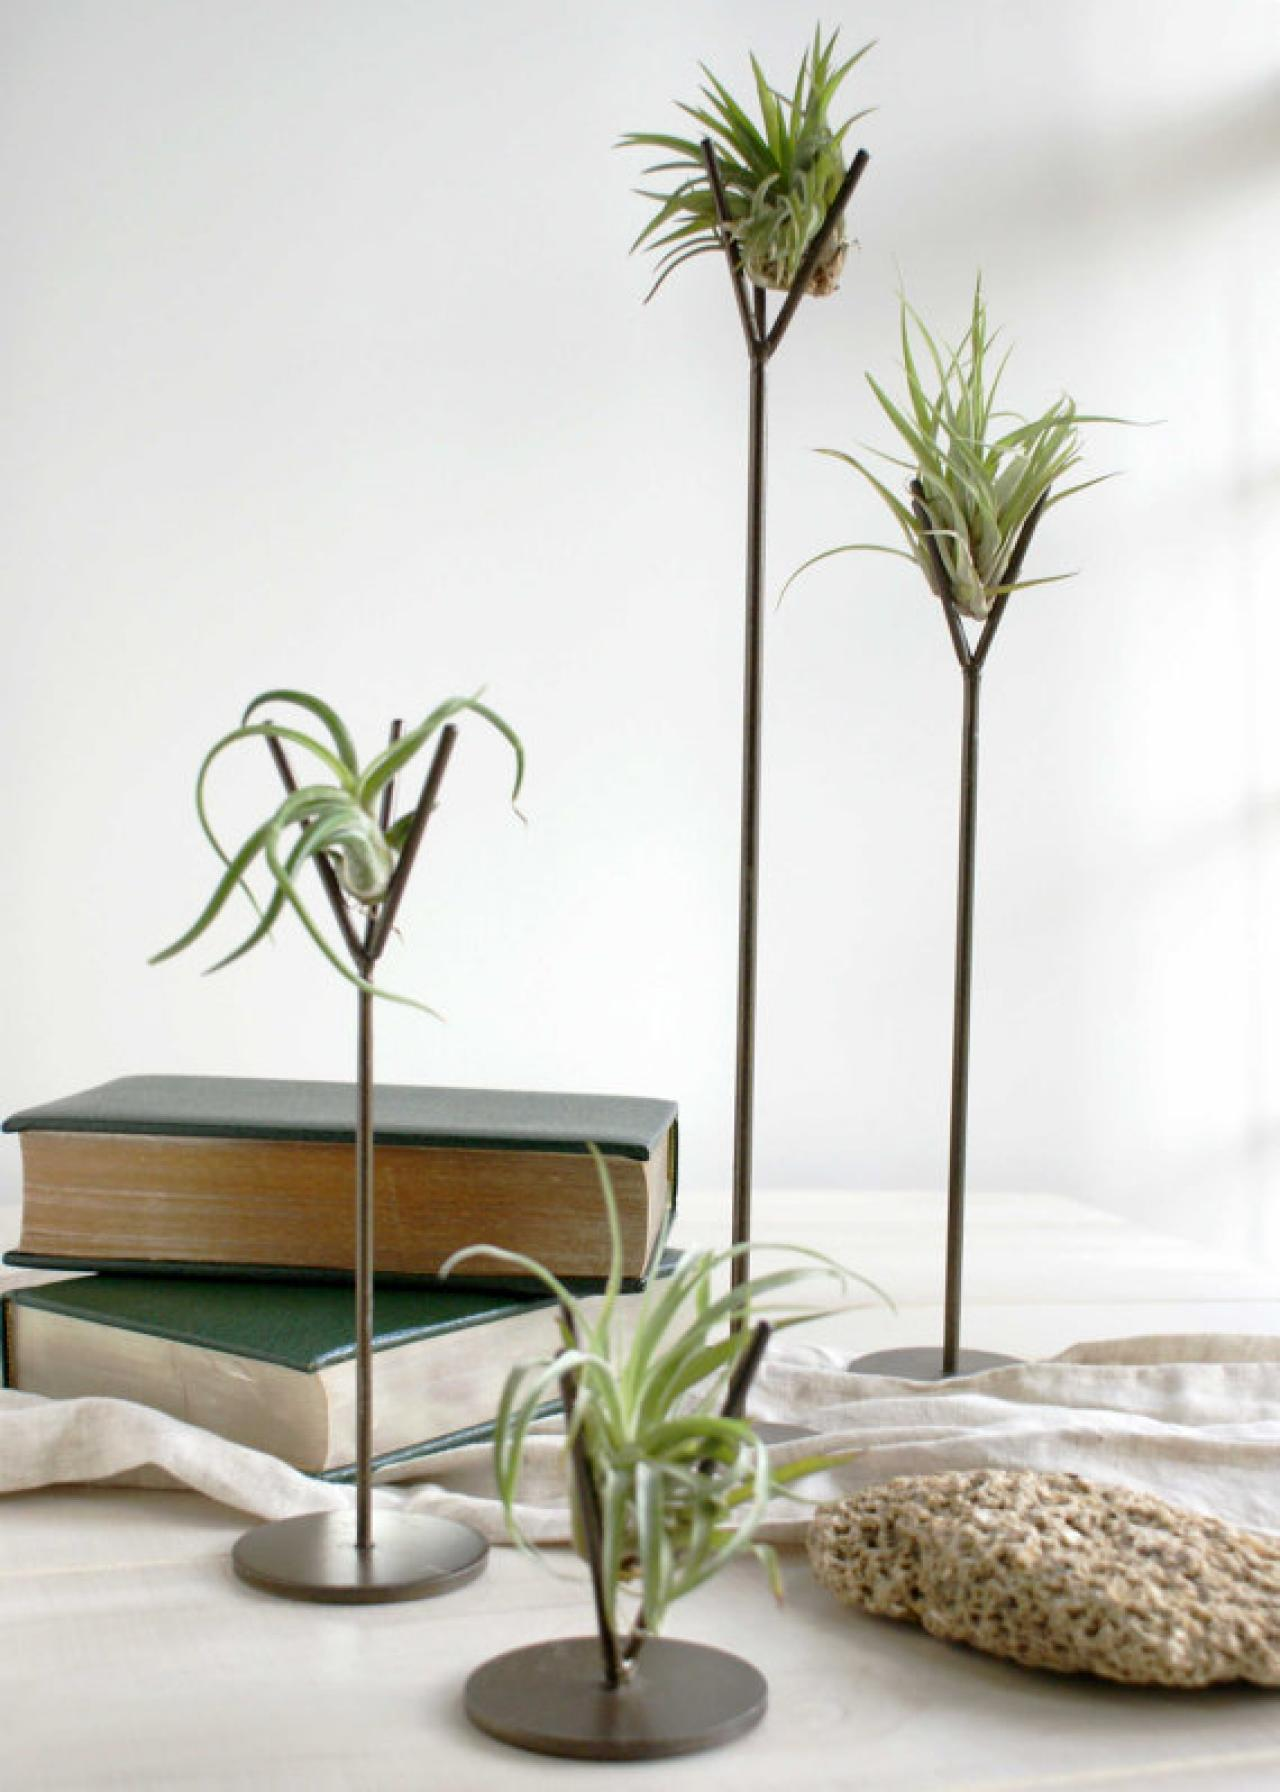 Diy Terrarium Stand Creative Genius The Zen Succulent Diy Network Blog